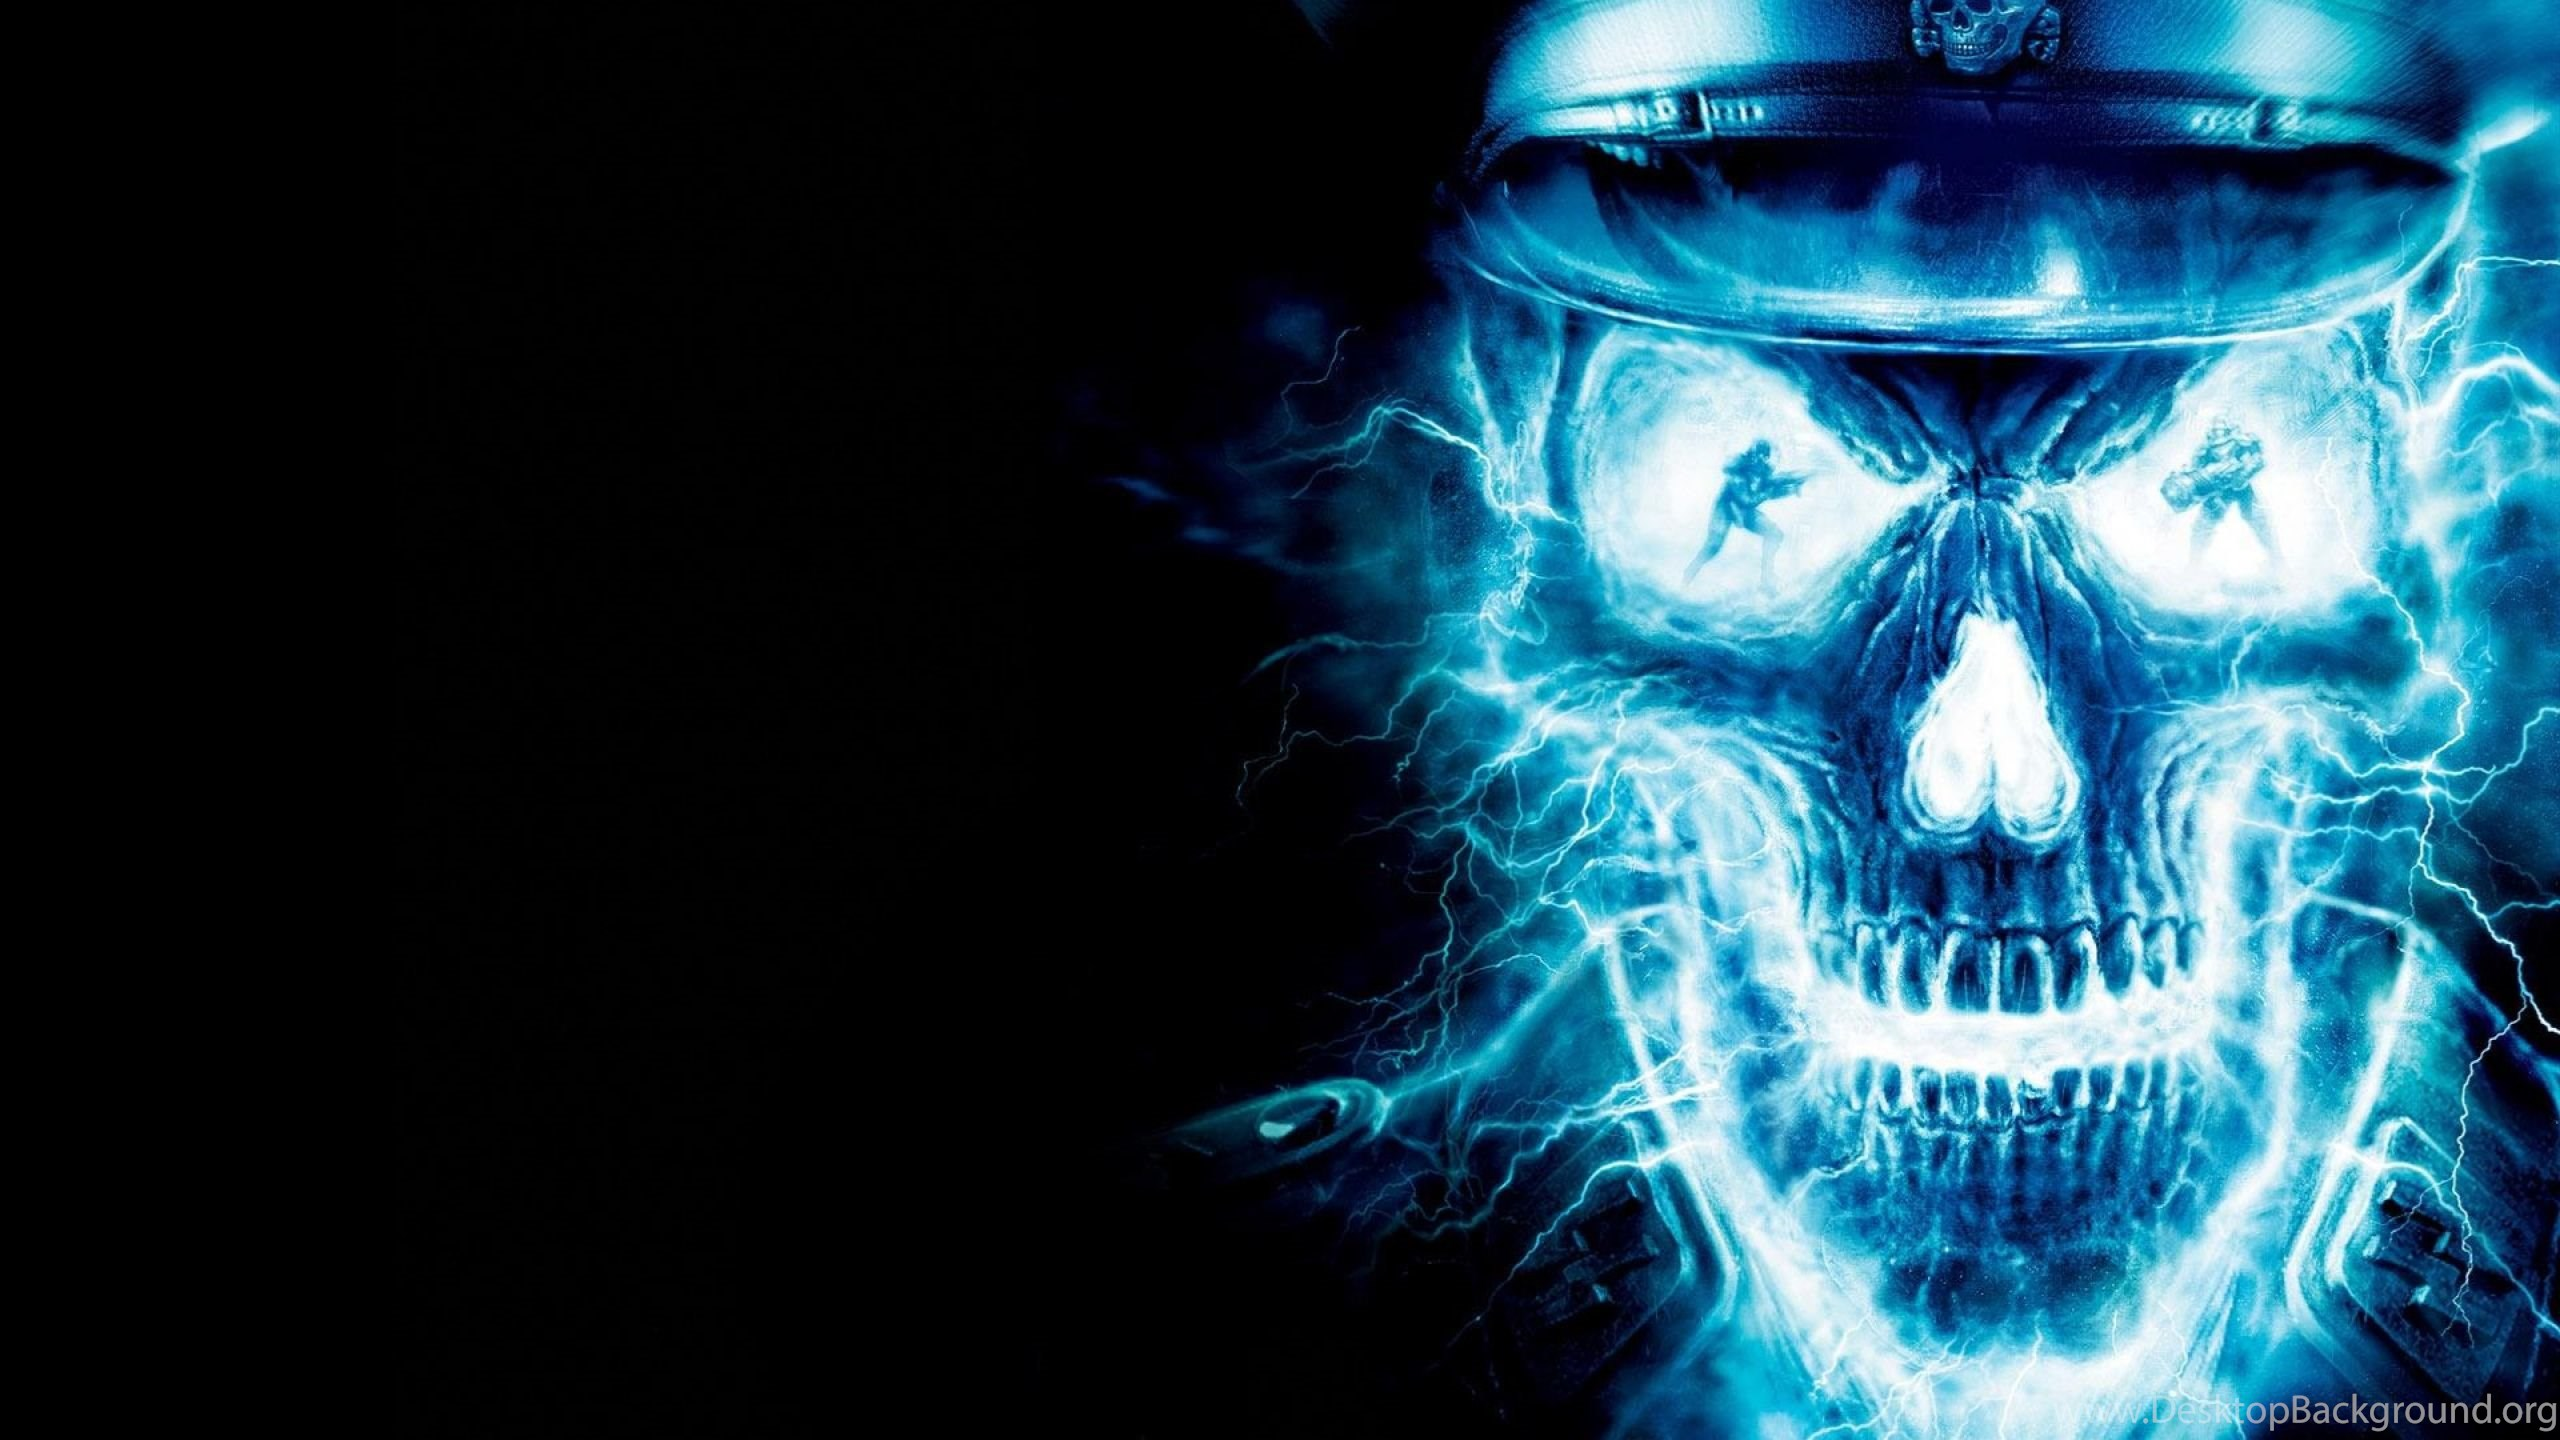 Fantastic Wallpaper Mobile Ghost Rider - 776035_ghost-rider-cool-2560x1600-hd-wallpapers-and-free-stock-photo_2560x1600_h  Photograph_924751.jpg